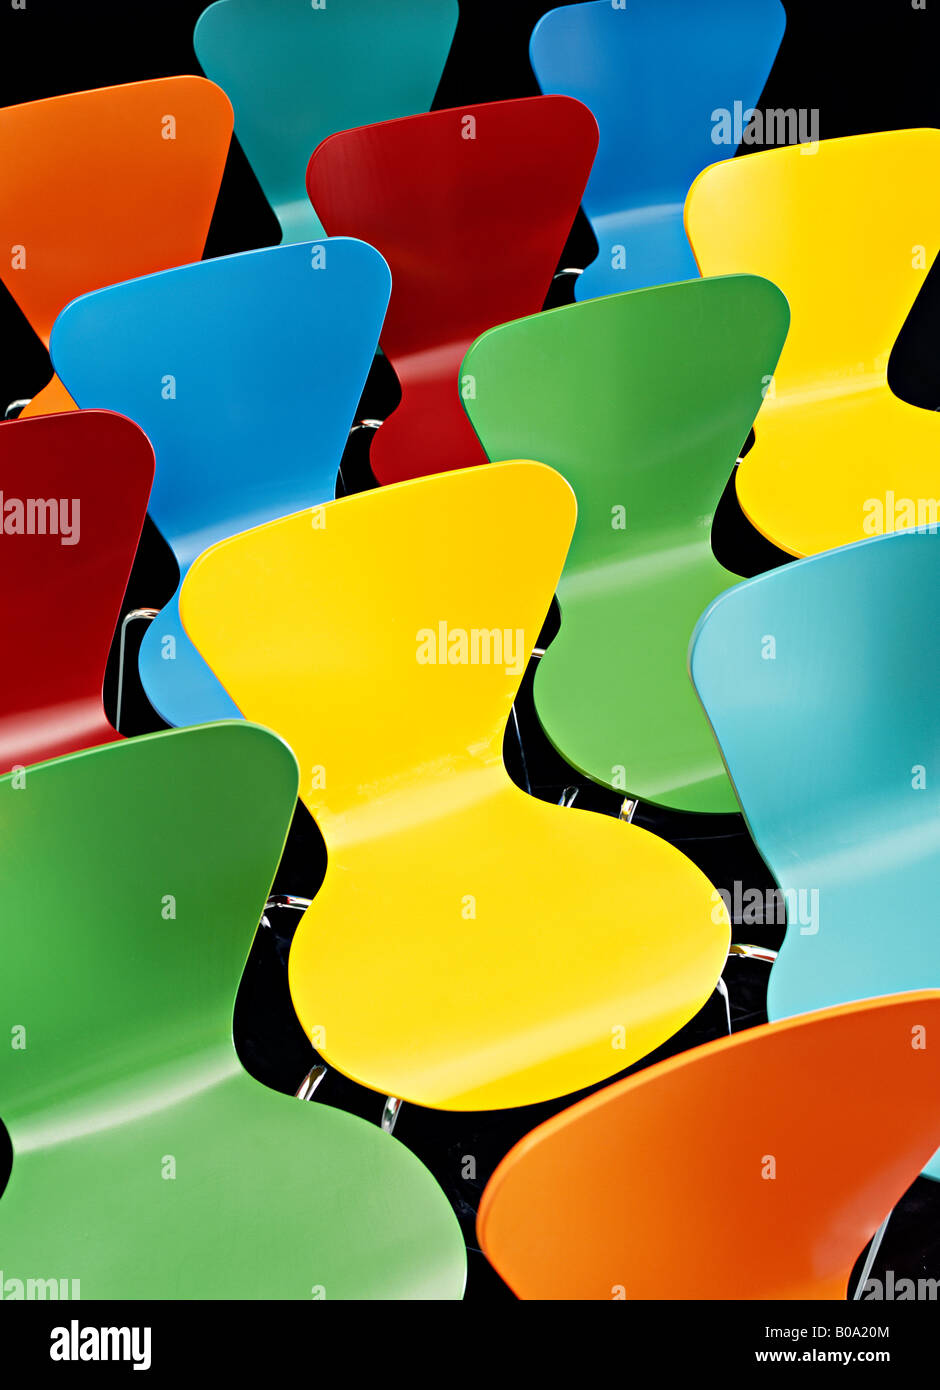 multi colored bent wood chairs - Stock Image